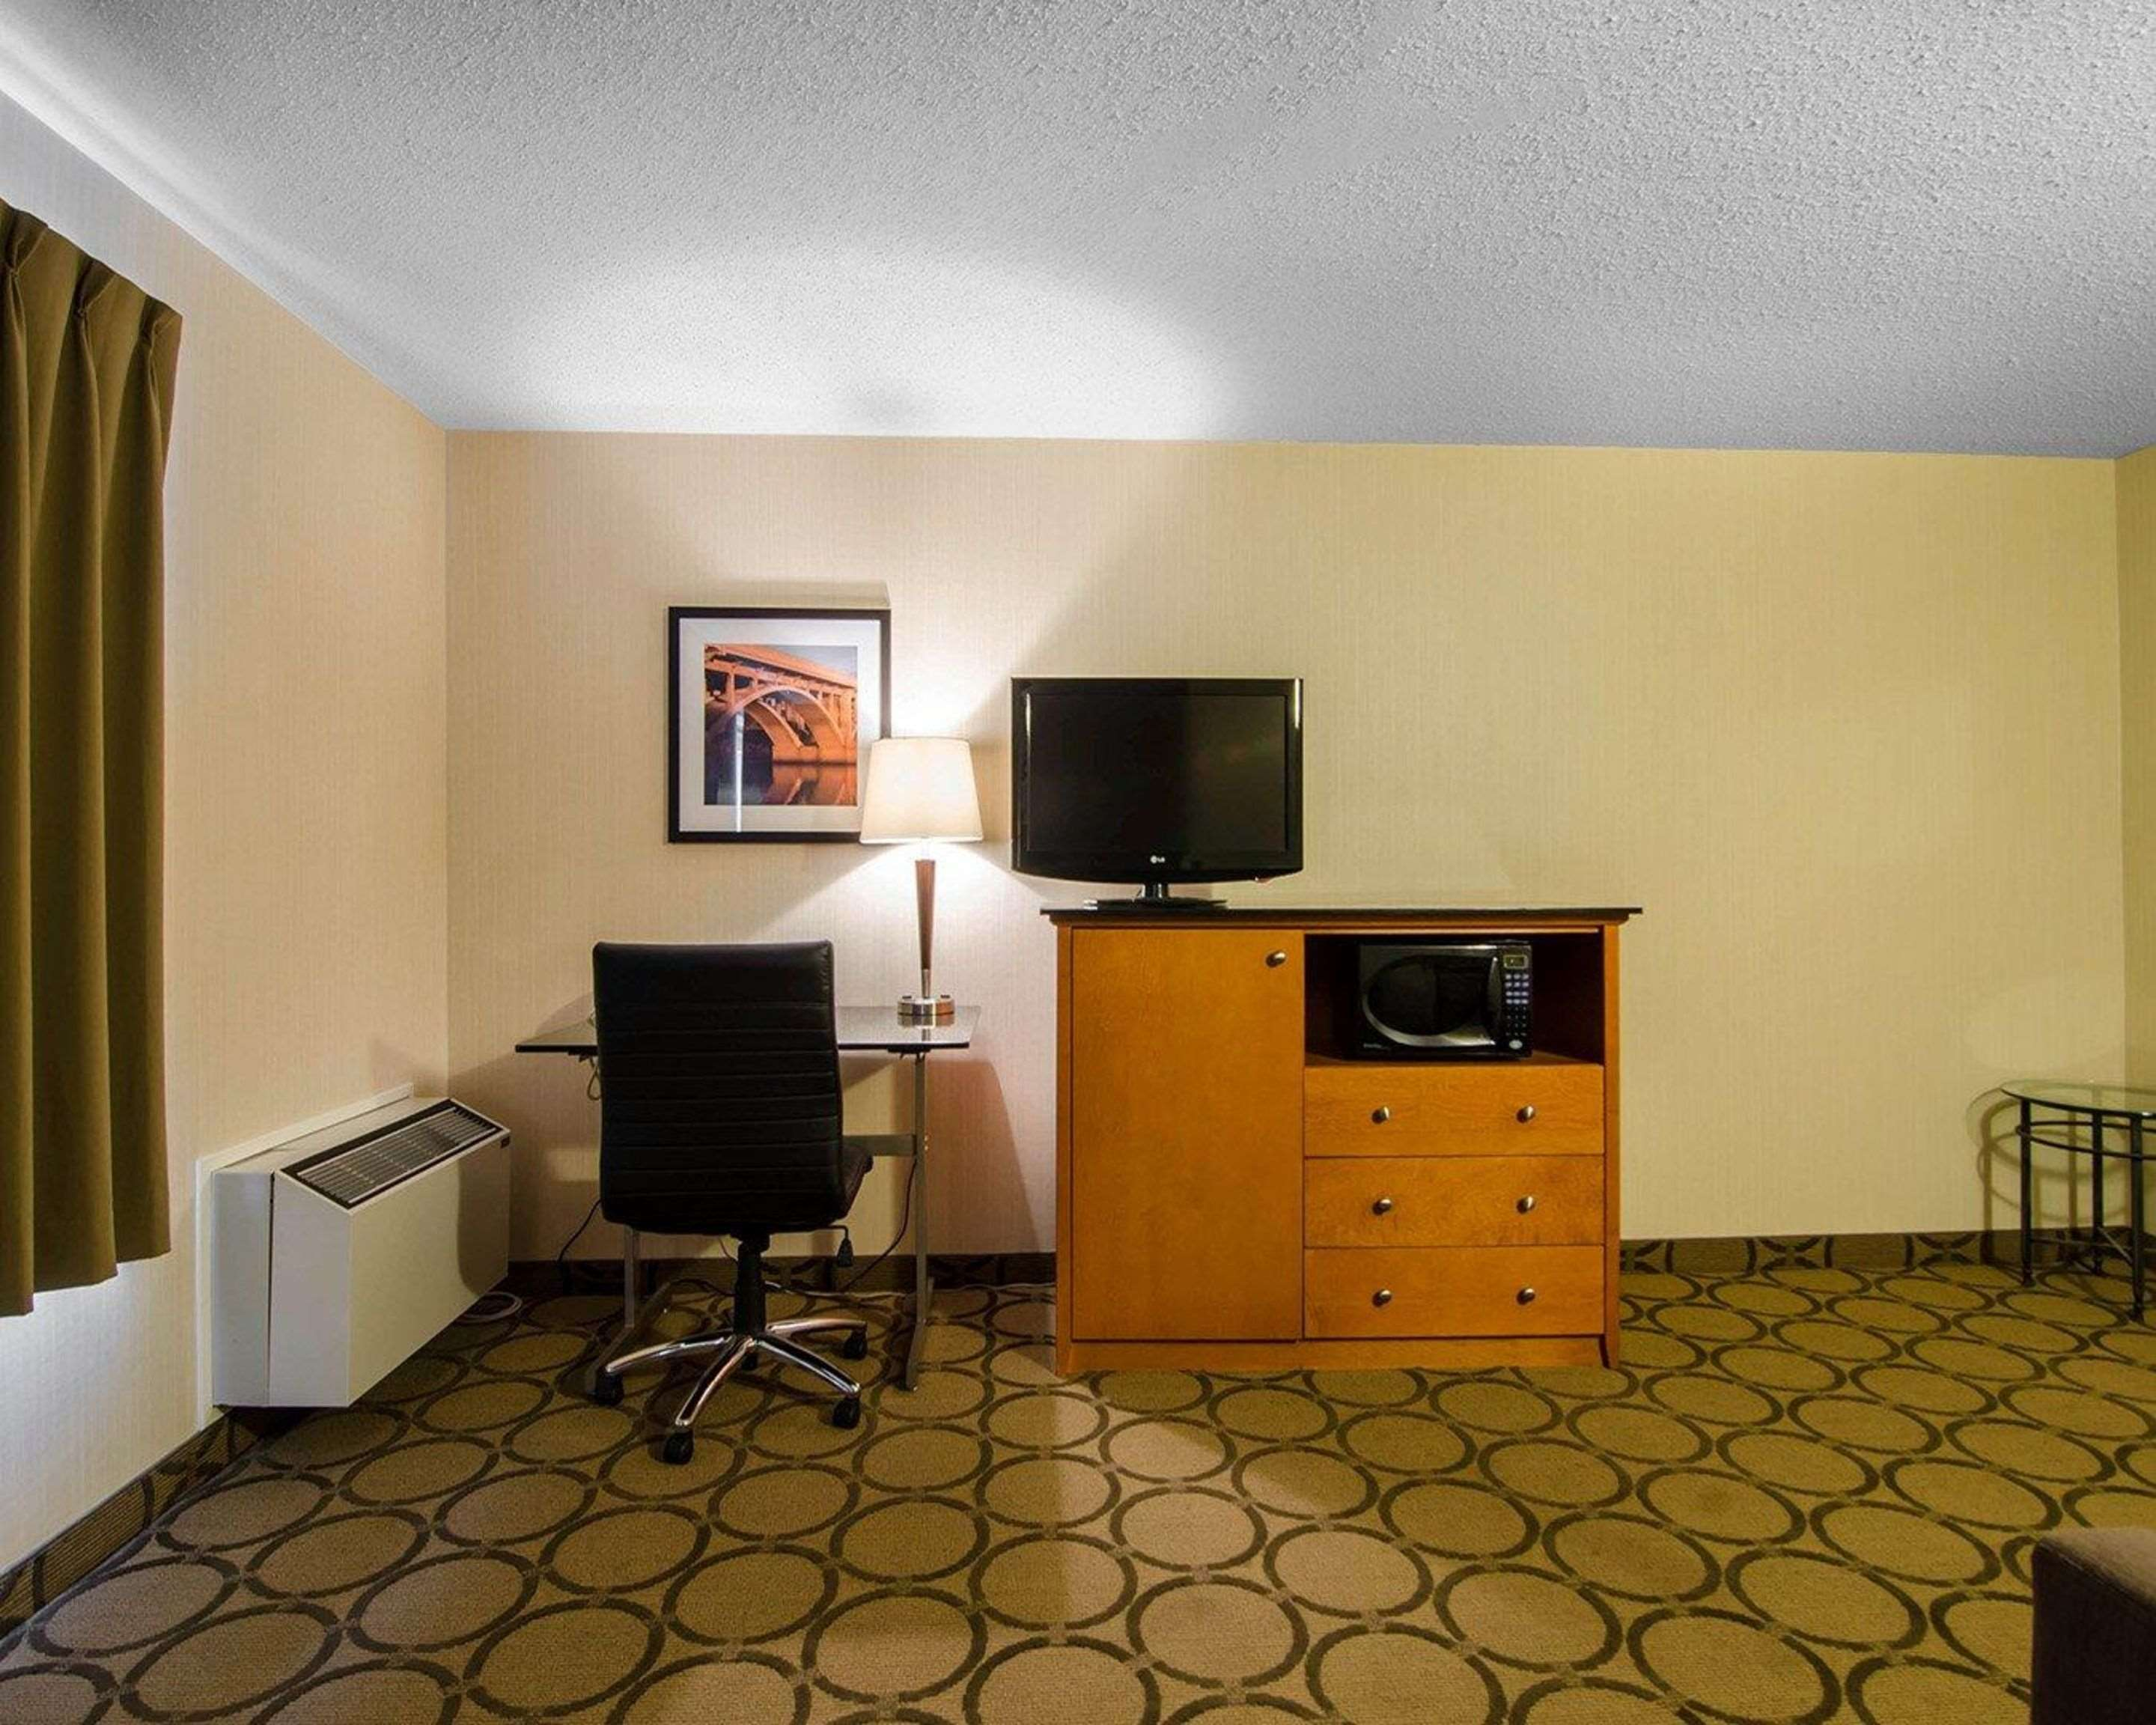 Comfort Inn in Saskatoon: Guest room with desk area